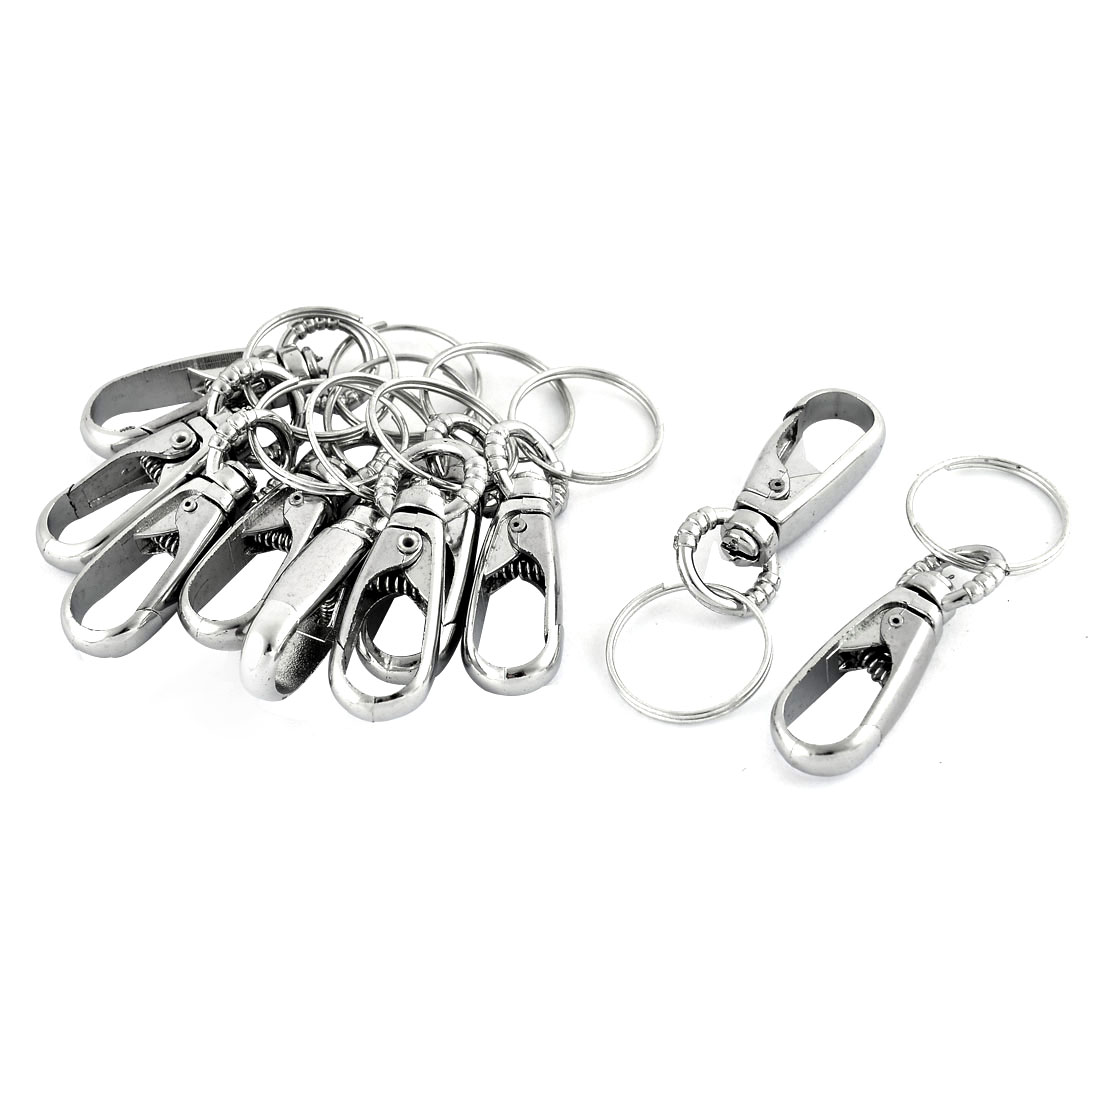 Metal Clasp Round Pendant Self Closing Keychain Keyring Silver Tone 6.8cm Length 10pcs